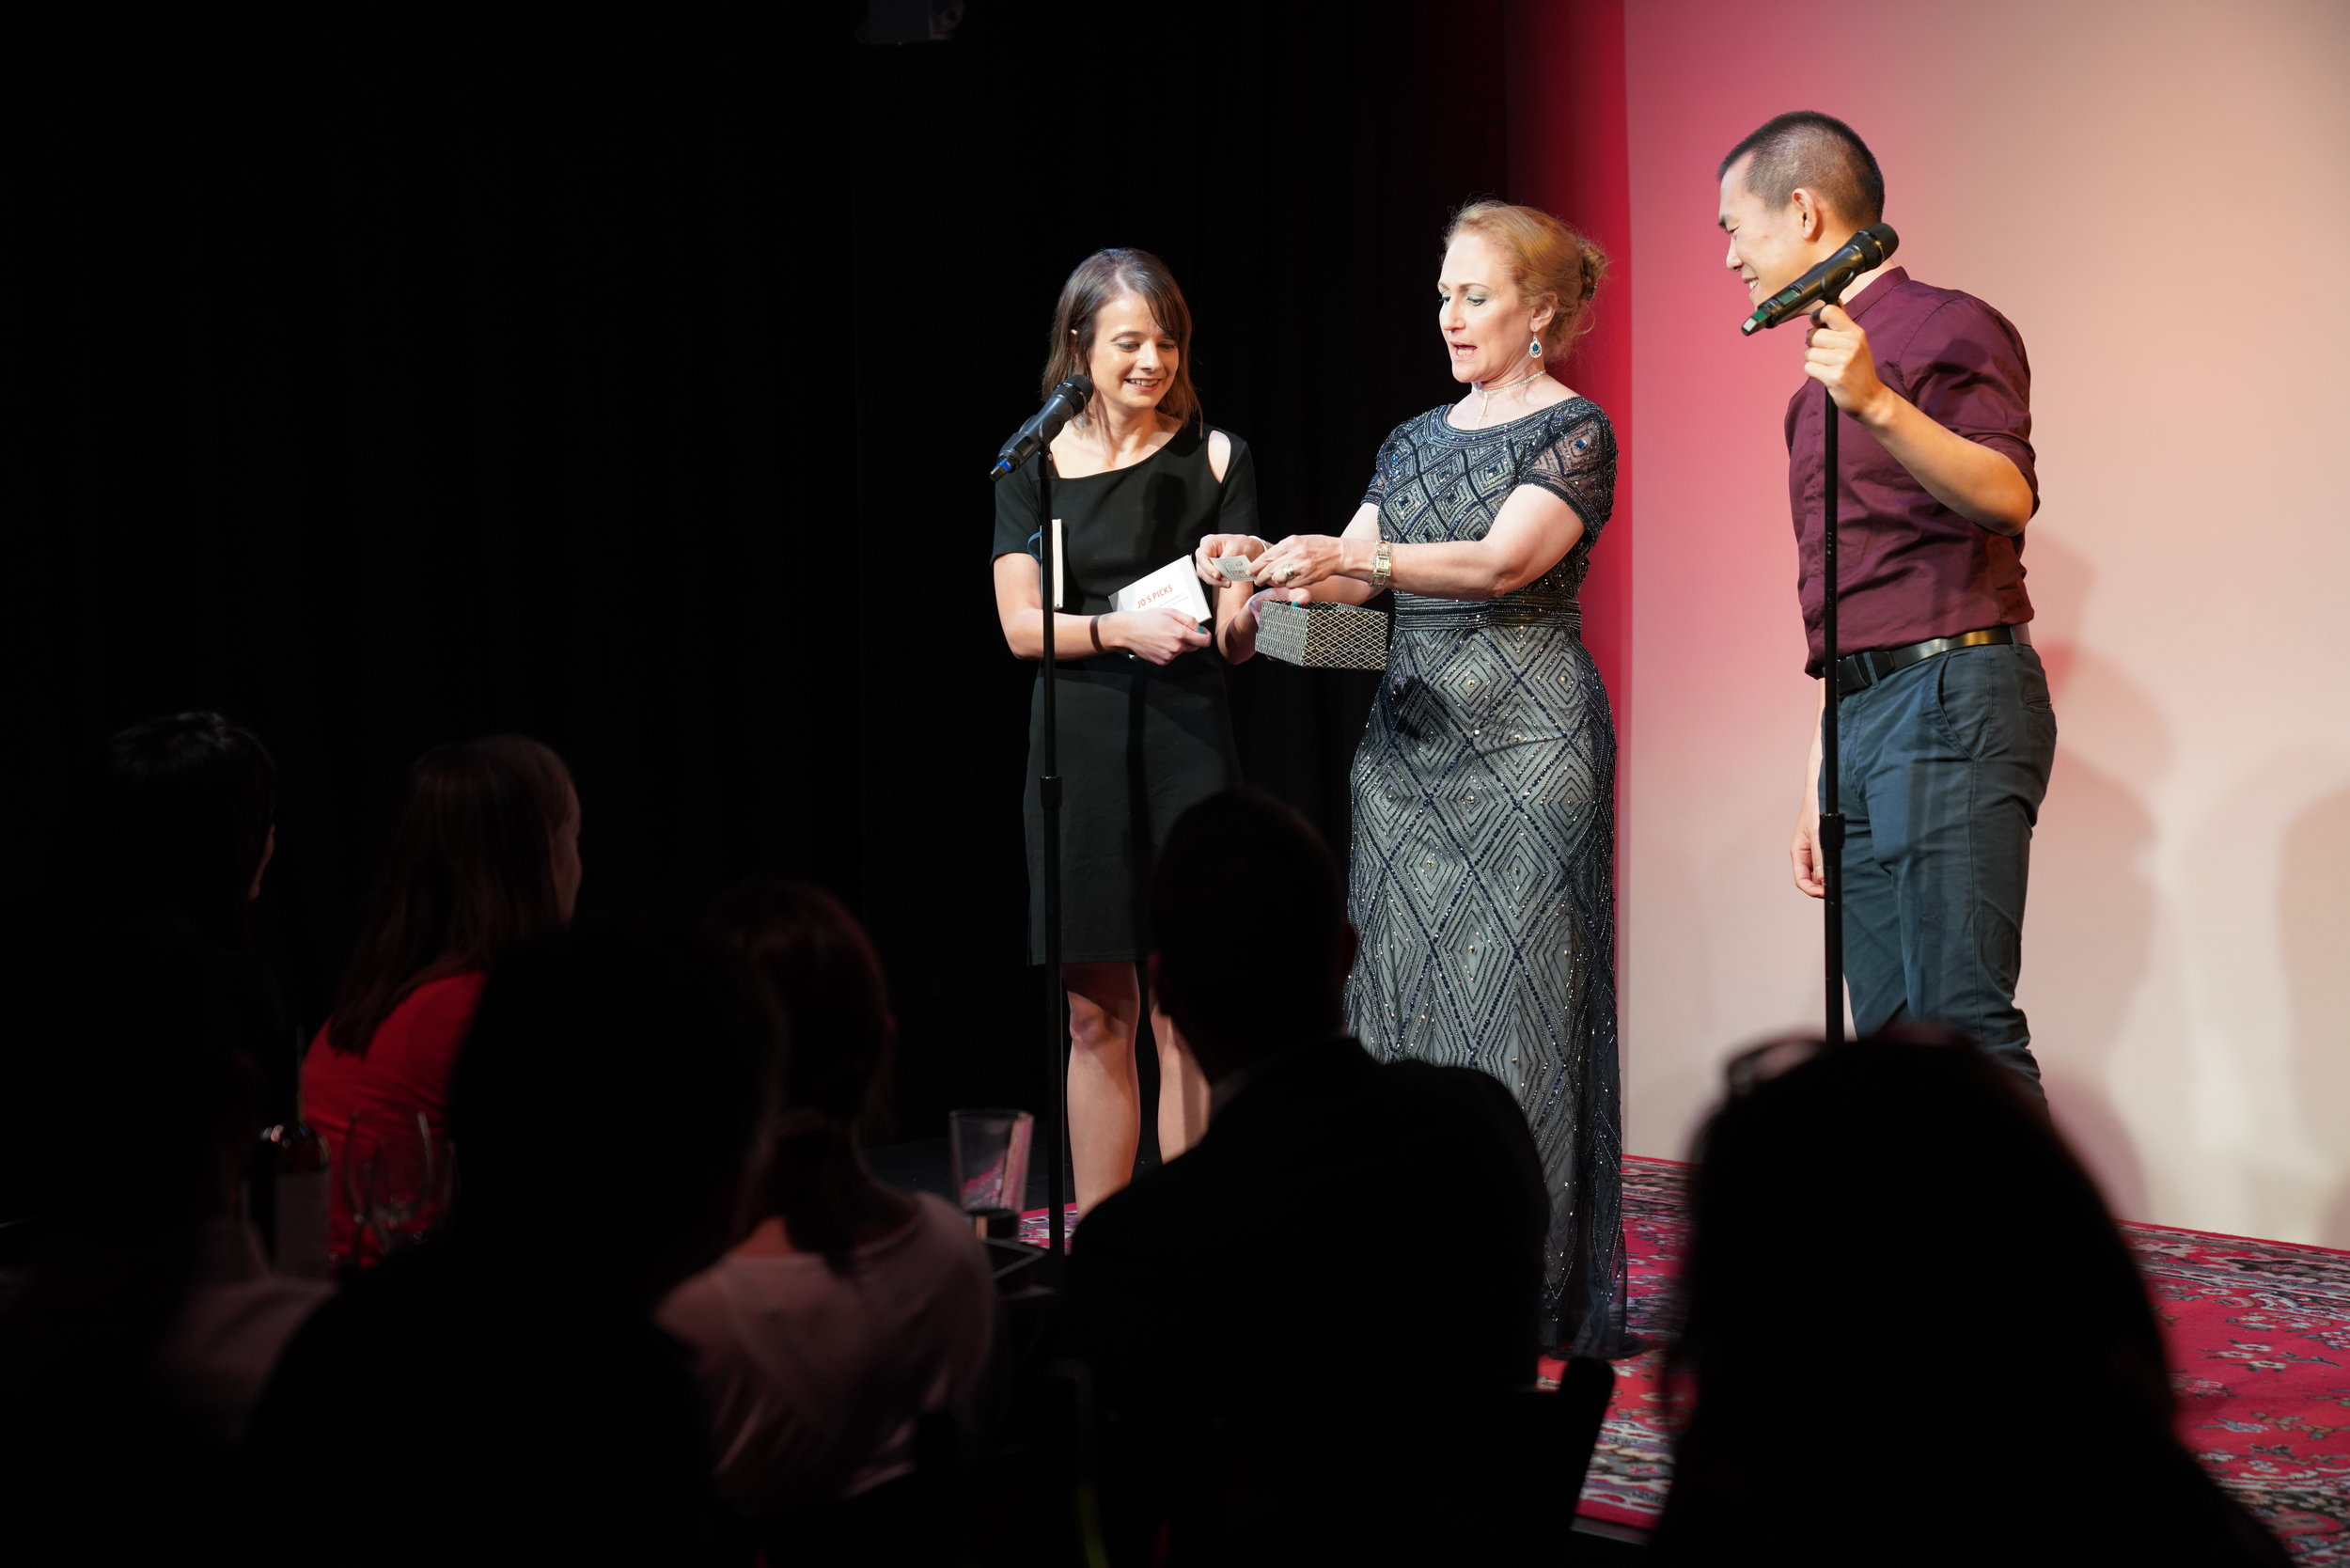 Storyteller Jo Handelsman assists with our raffle drawing!